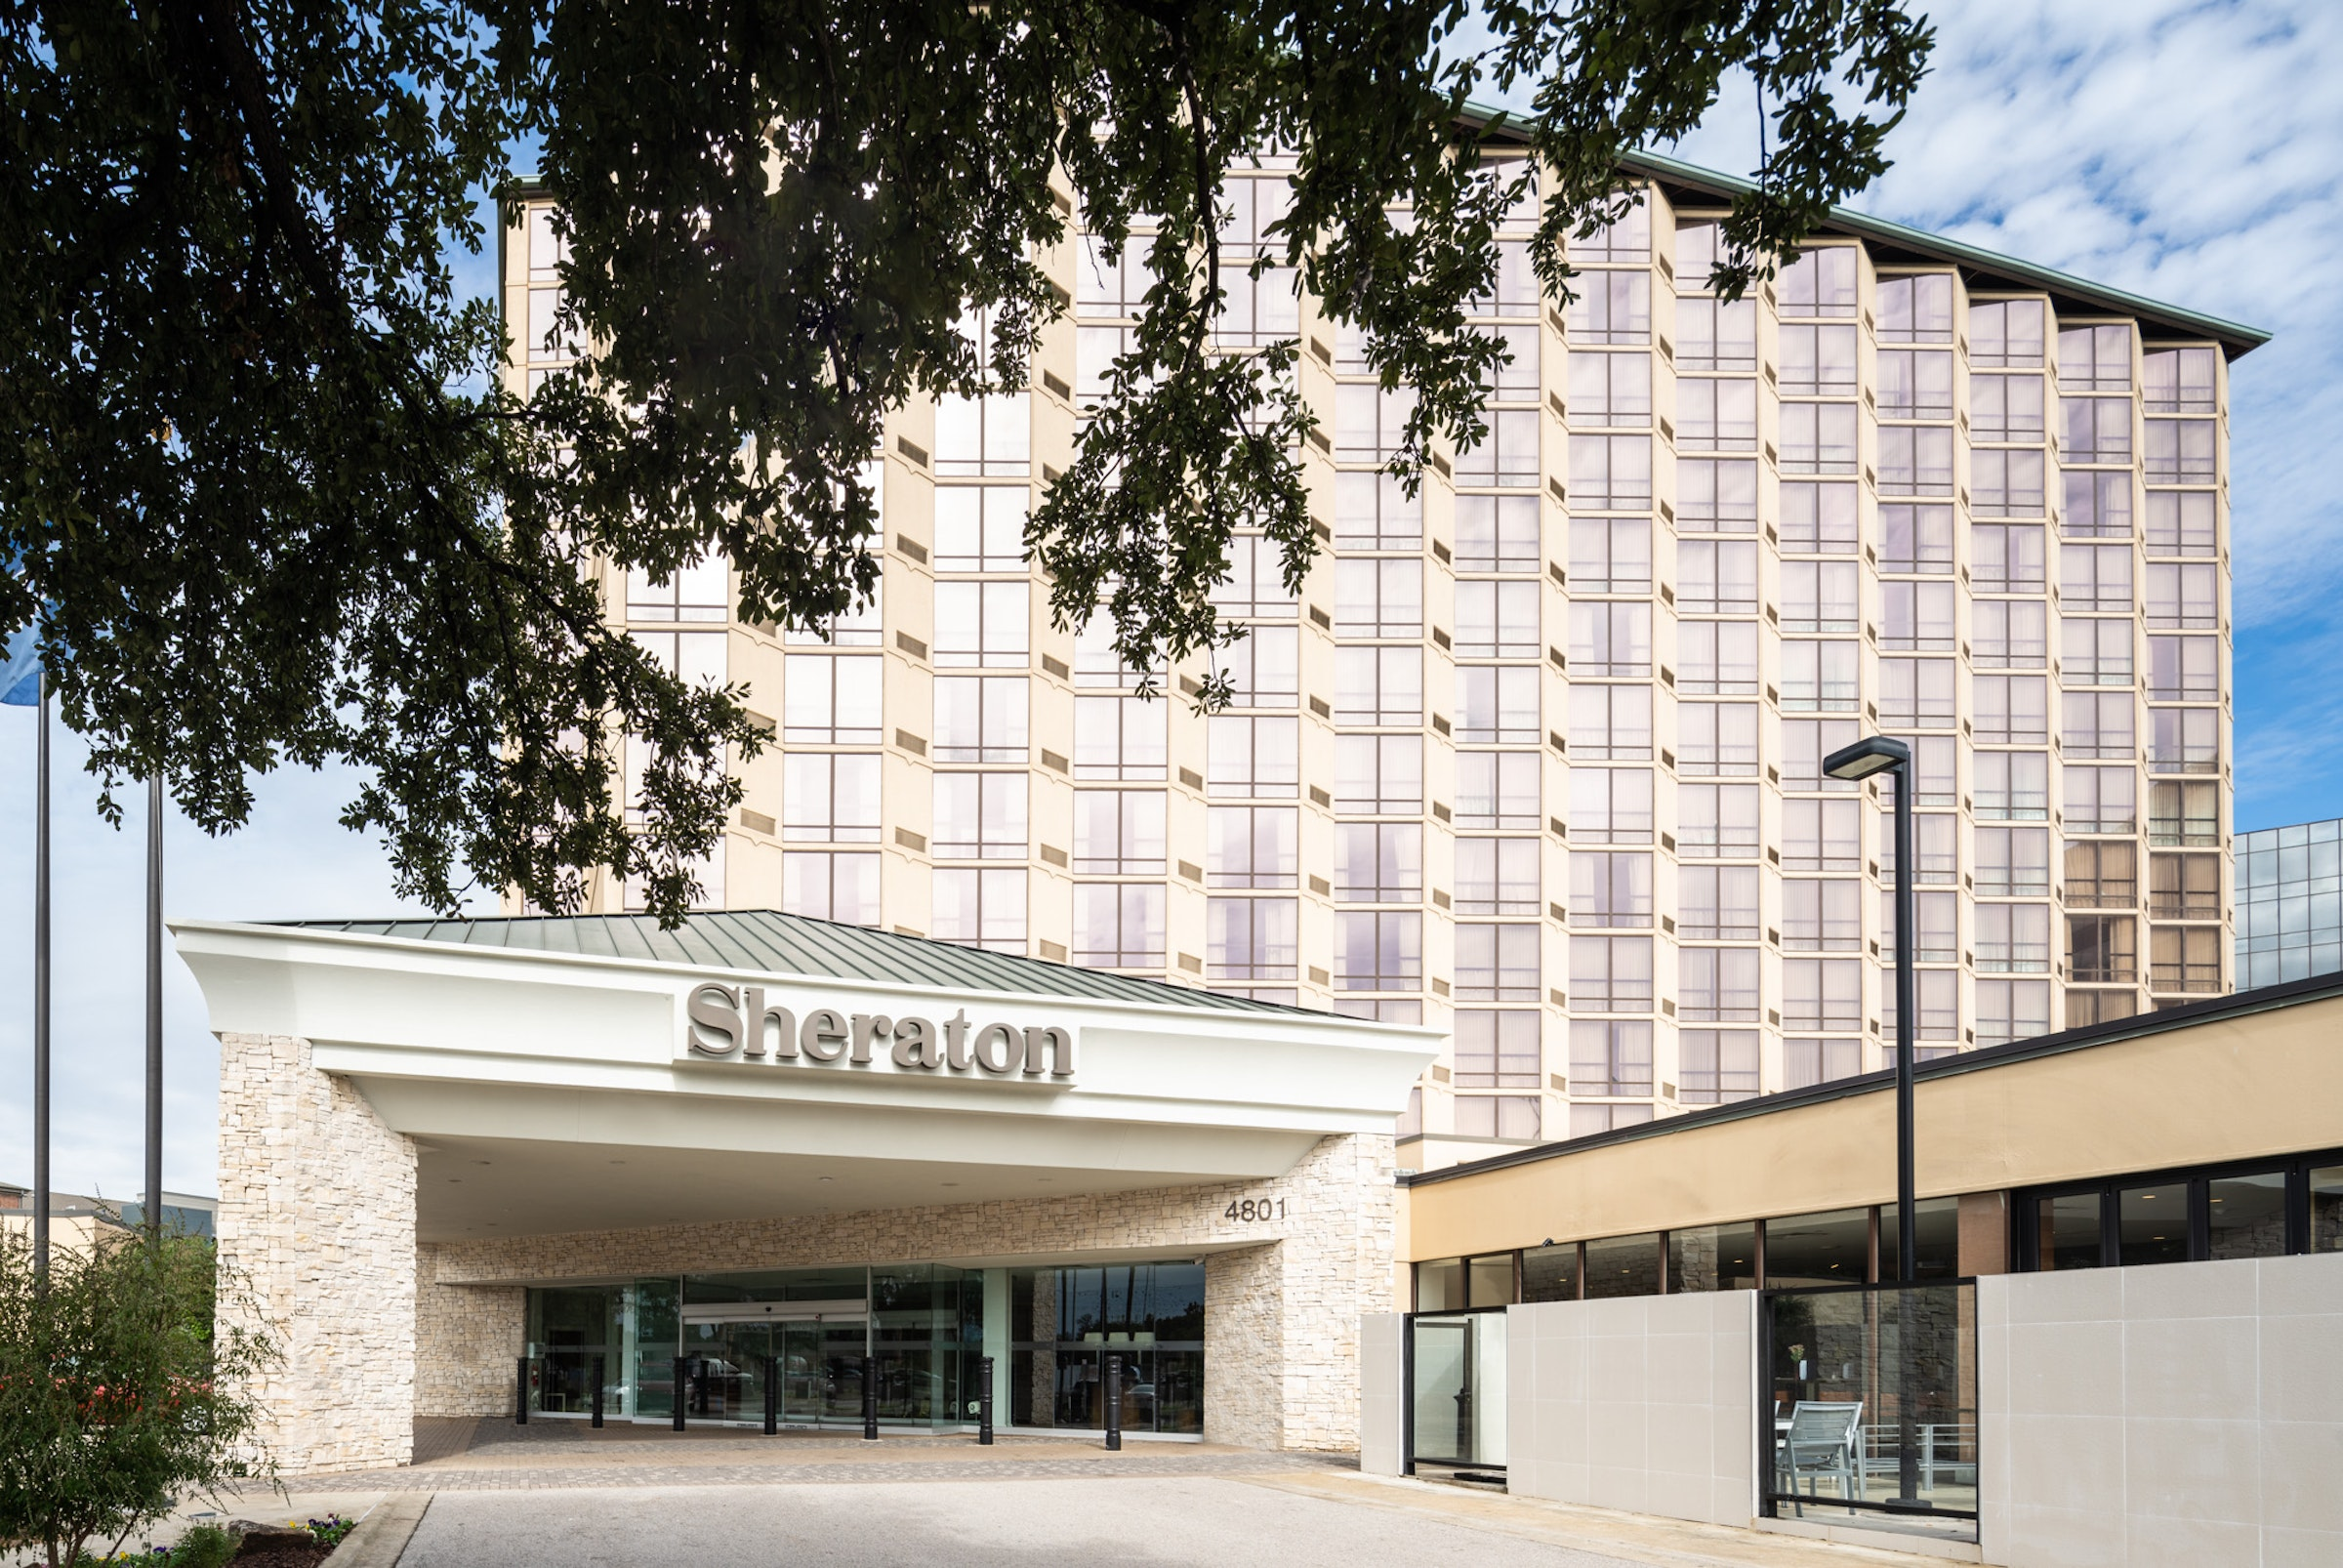 Sheraton Dallas Hotel by the Galleria in Beyond Dallas